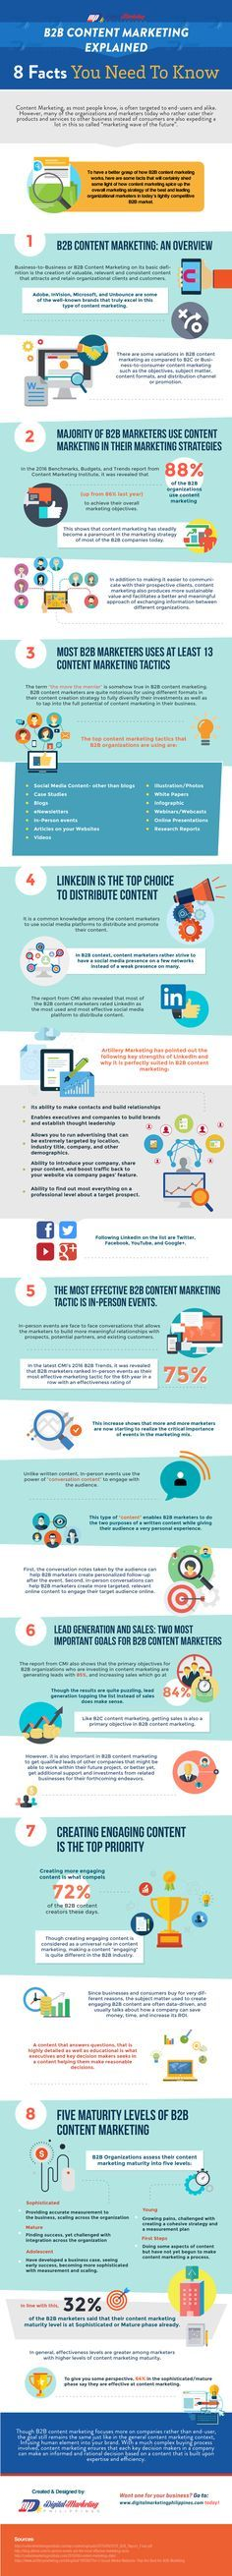 """Content Marketing, as most people know, is often targeted to end-users and alike. However, many of the organizations and marketers today who rather cater their products and services to other business instead of consumers are also expediting a lot in this so called """"marketing wave of the future""""."""